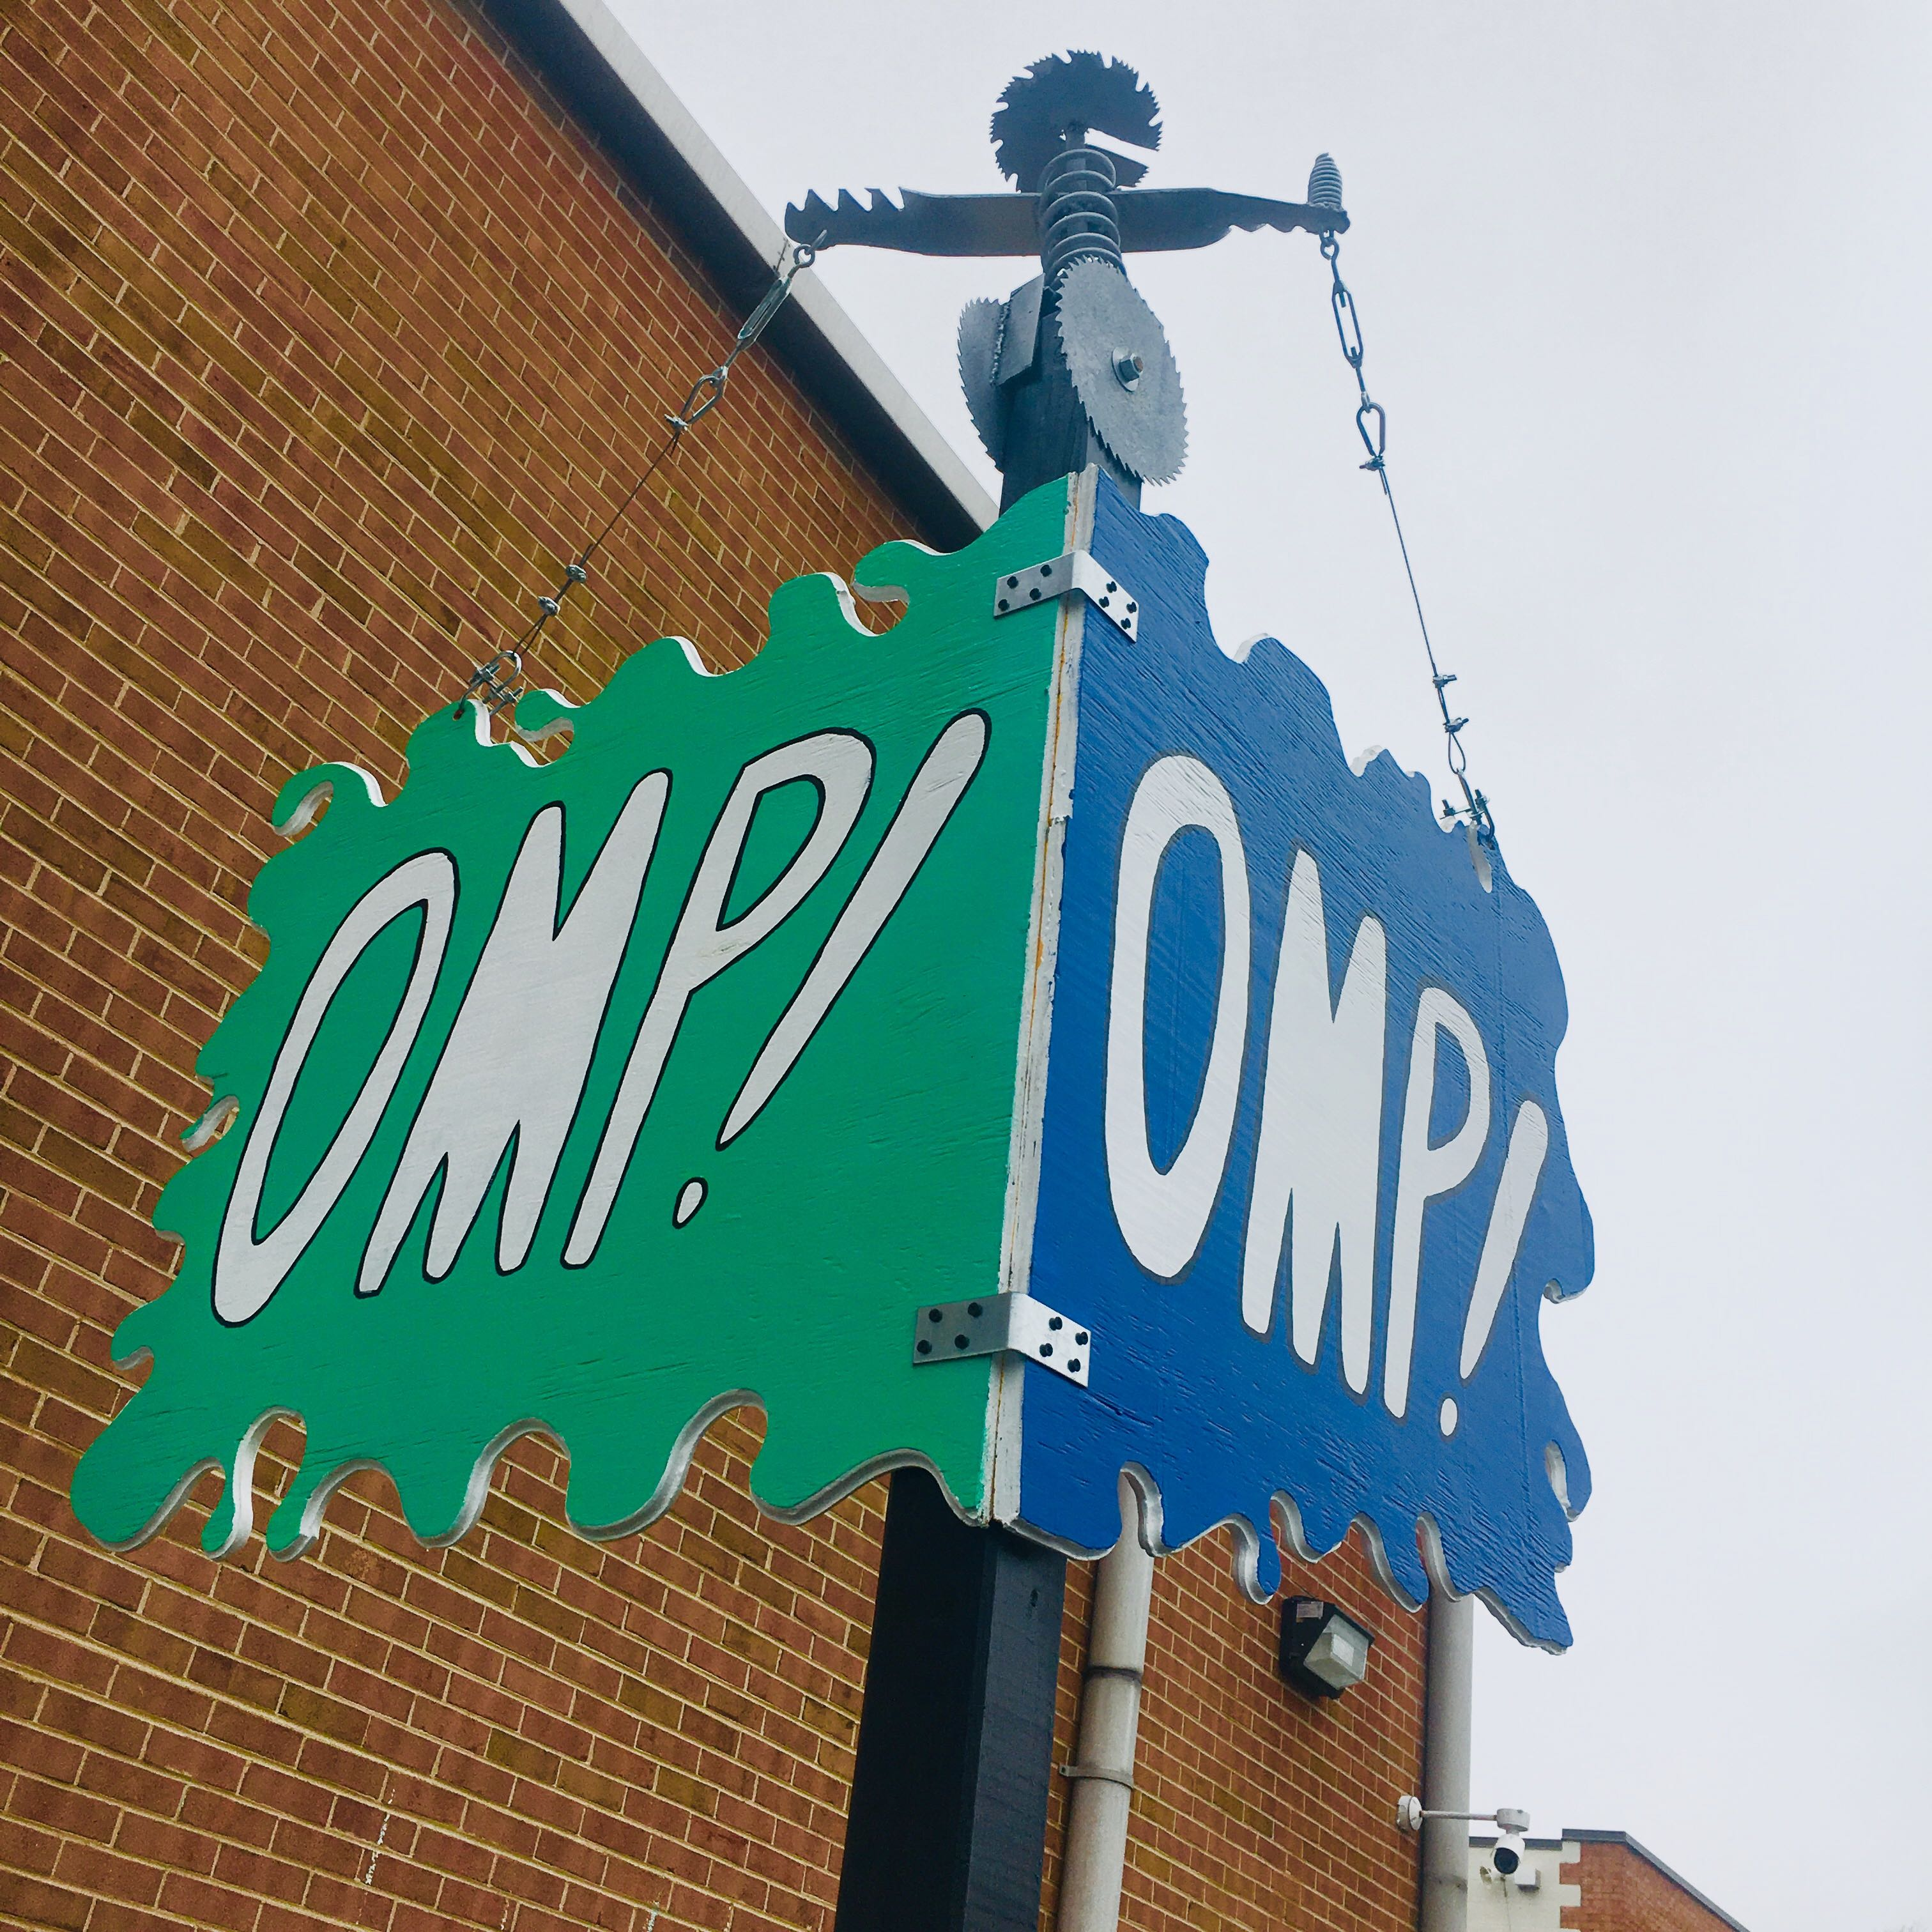 OMP! street signs at the far west side of the warehouse.